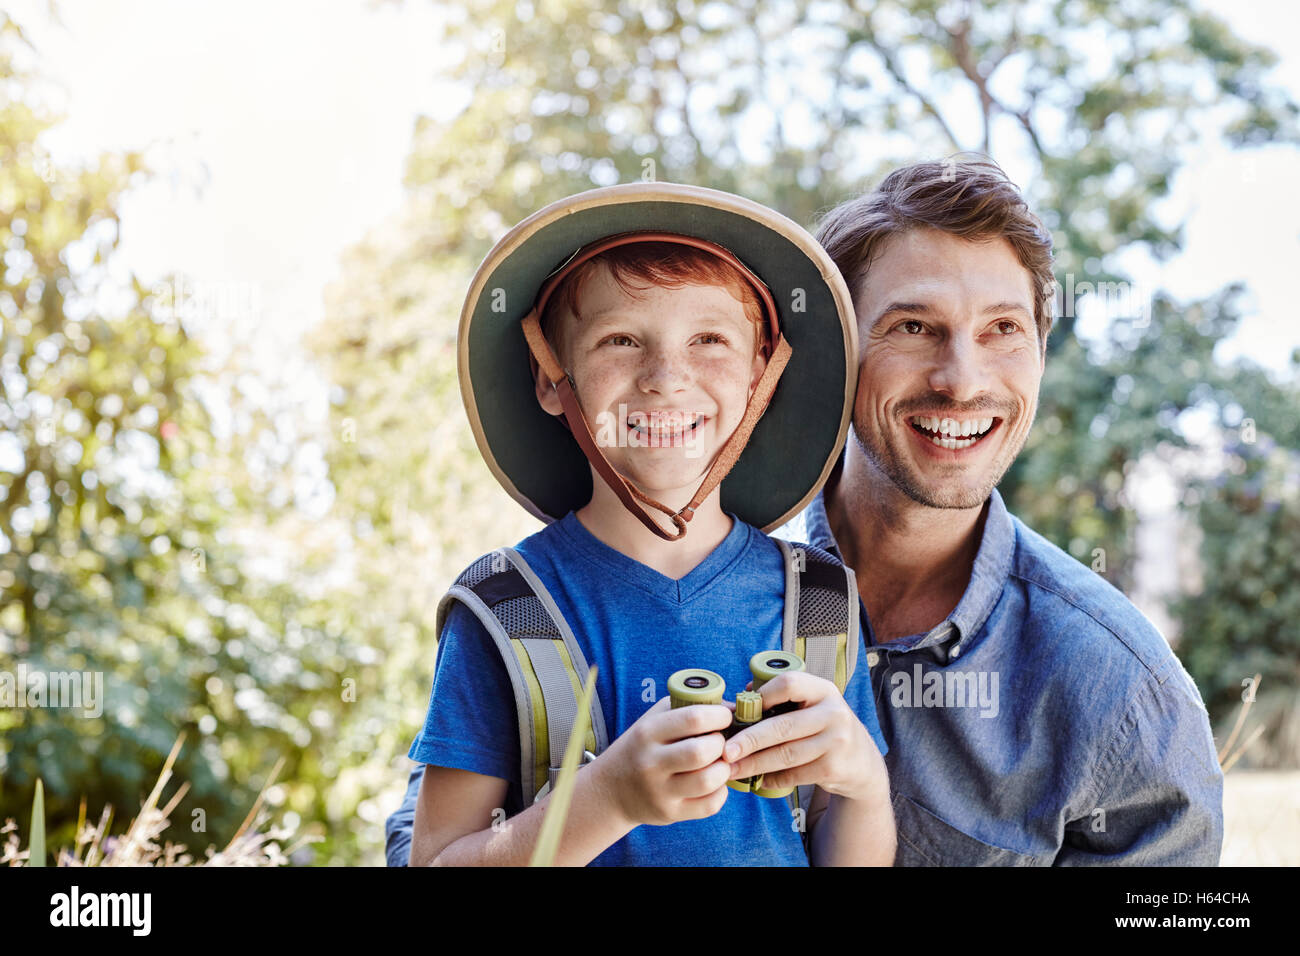 Father and son on expedition - Stock Image